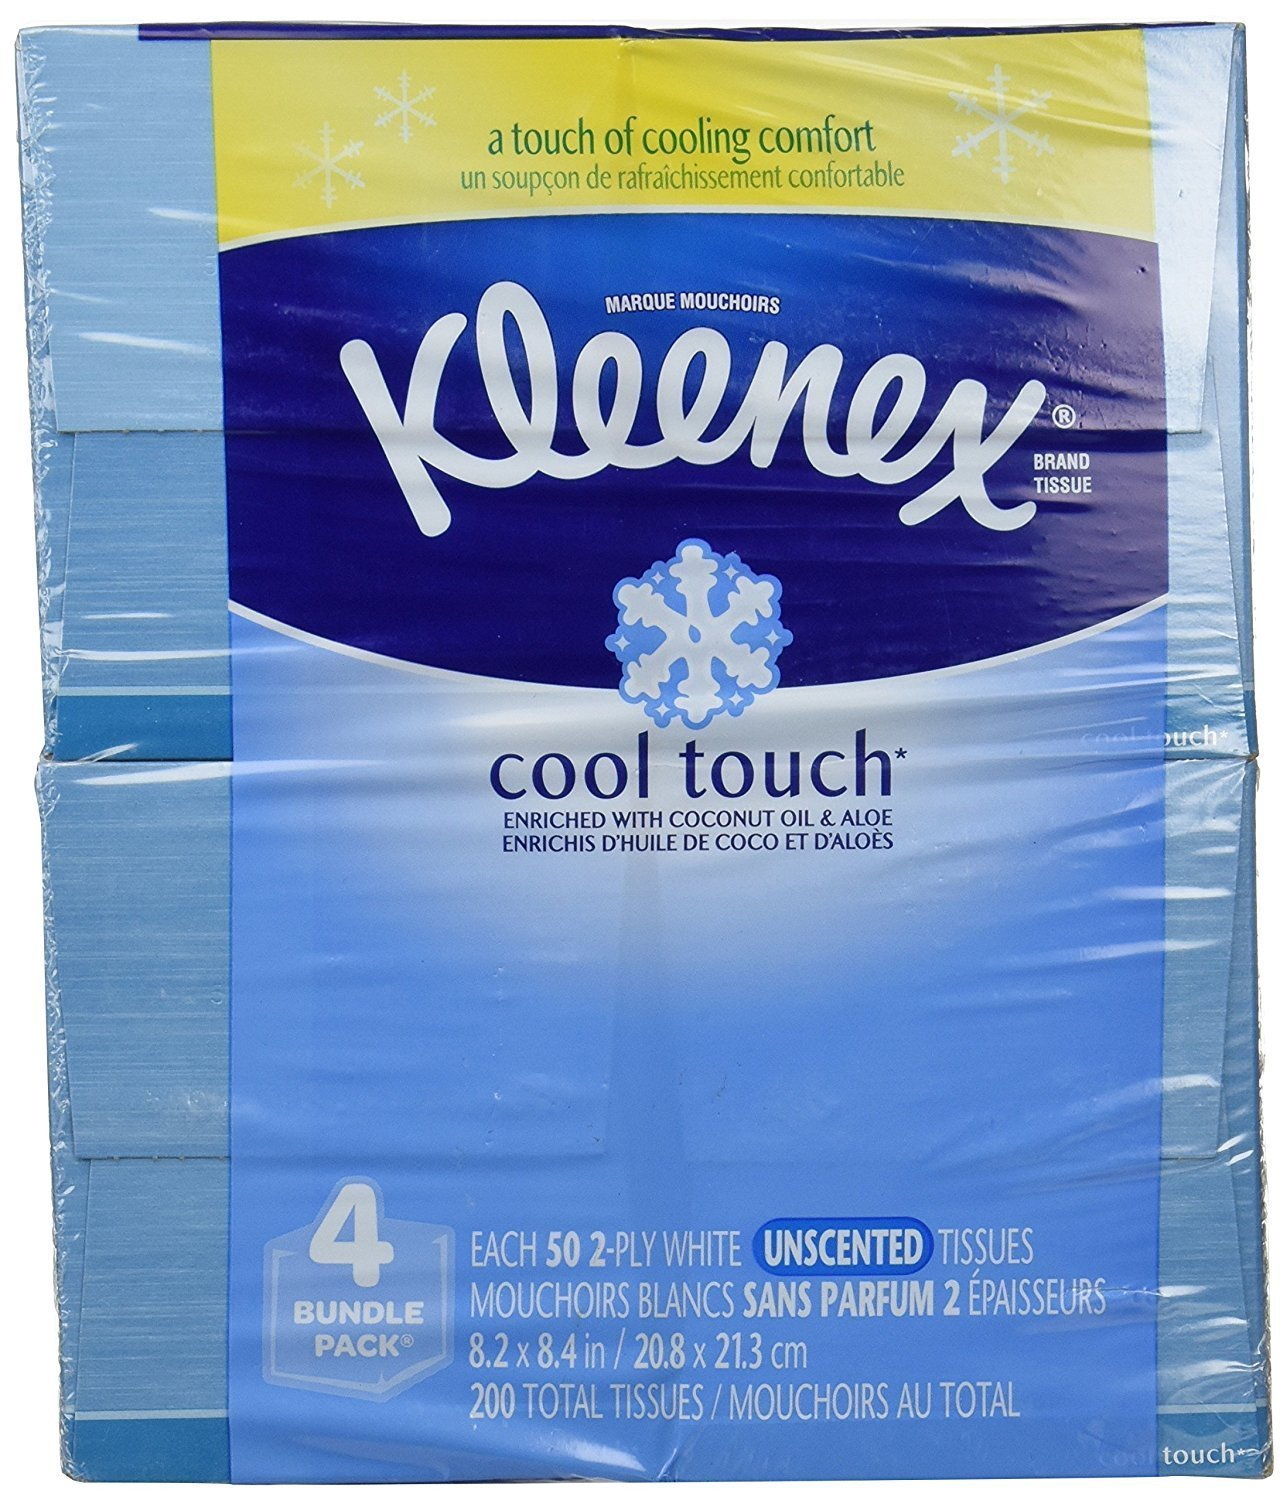 Kleenex 700690401841 Cool Touch Tissues, Upright-50 ct-16 pk, 16 Pack, no, 16 Pack by Kleenex